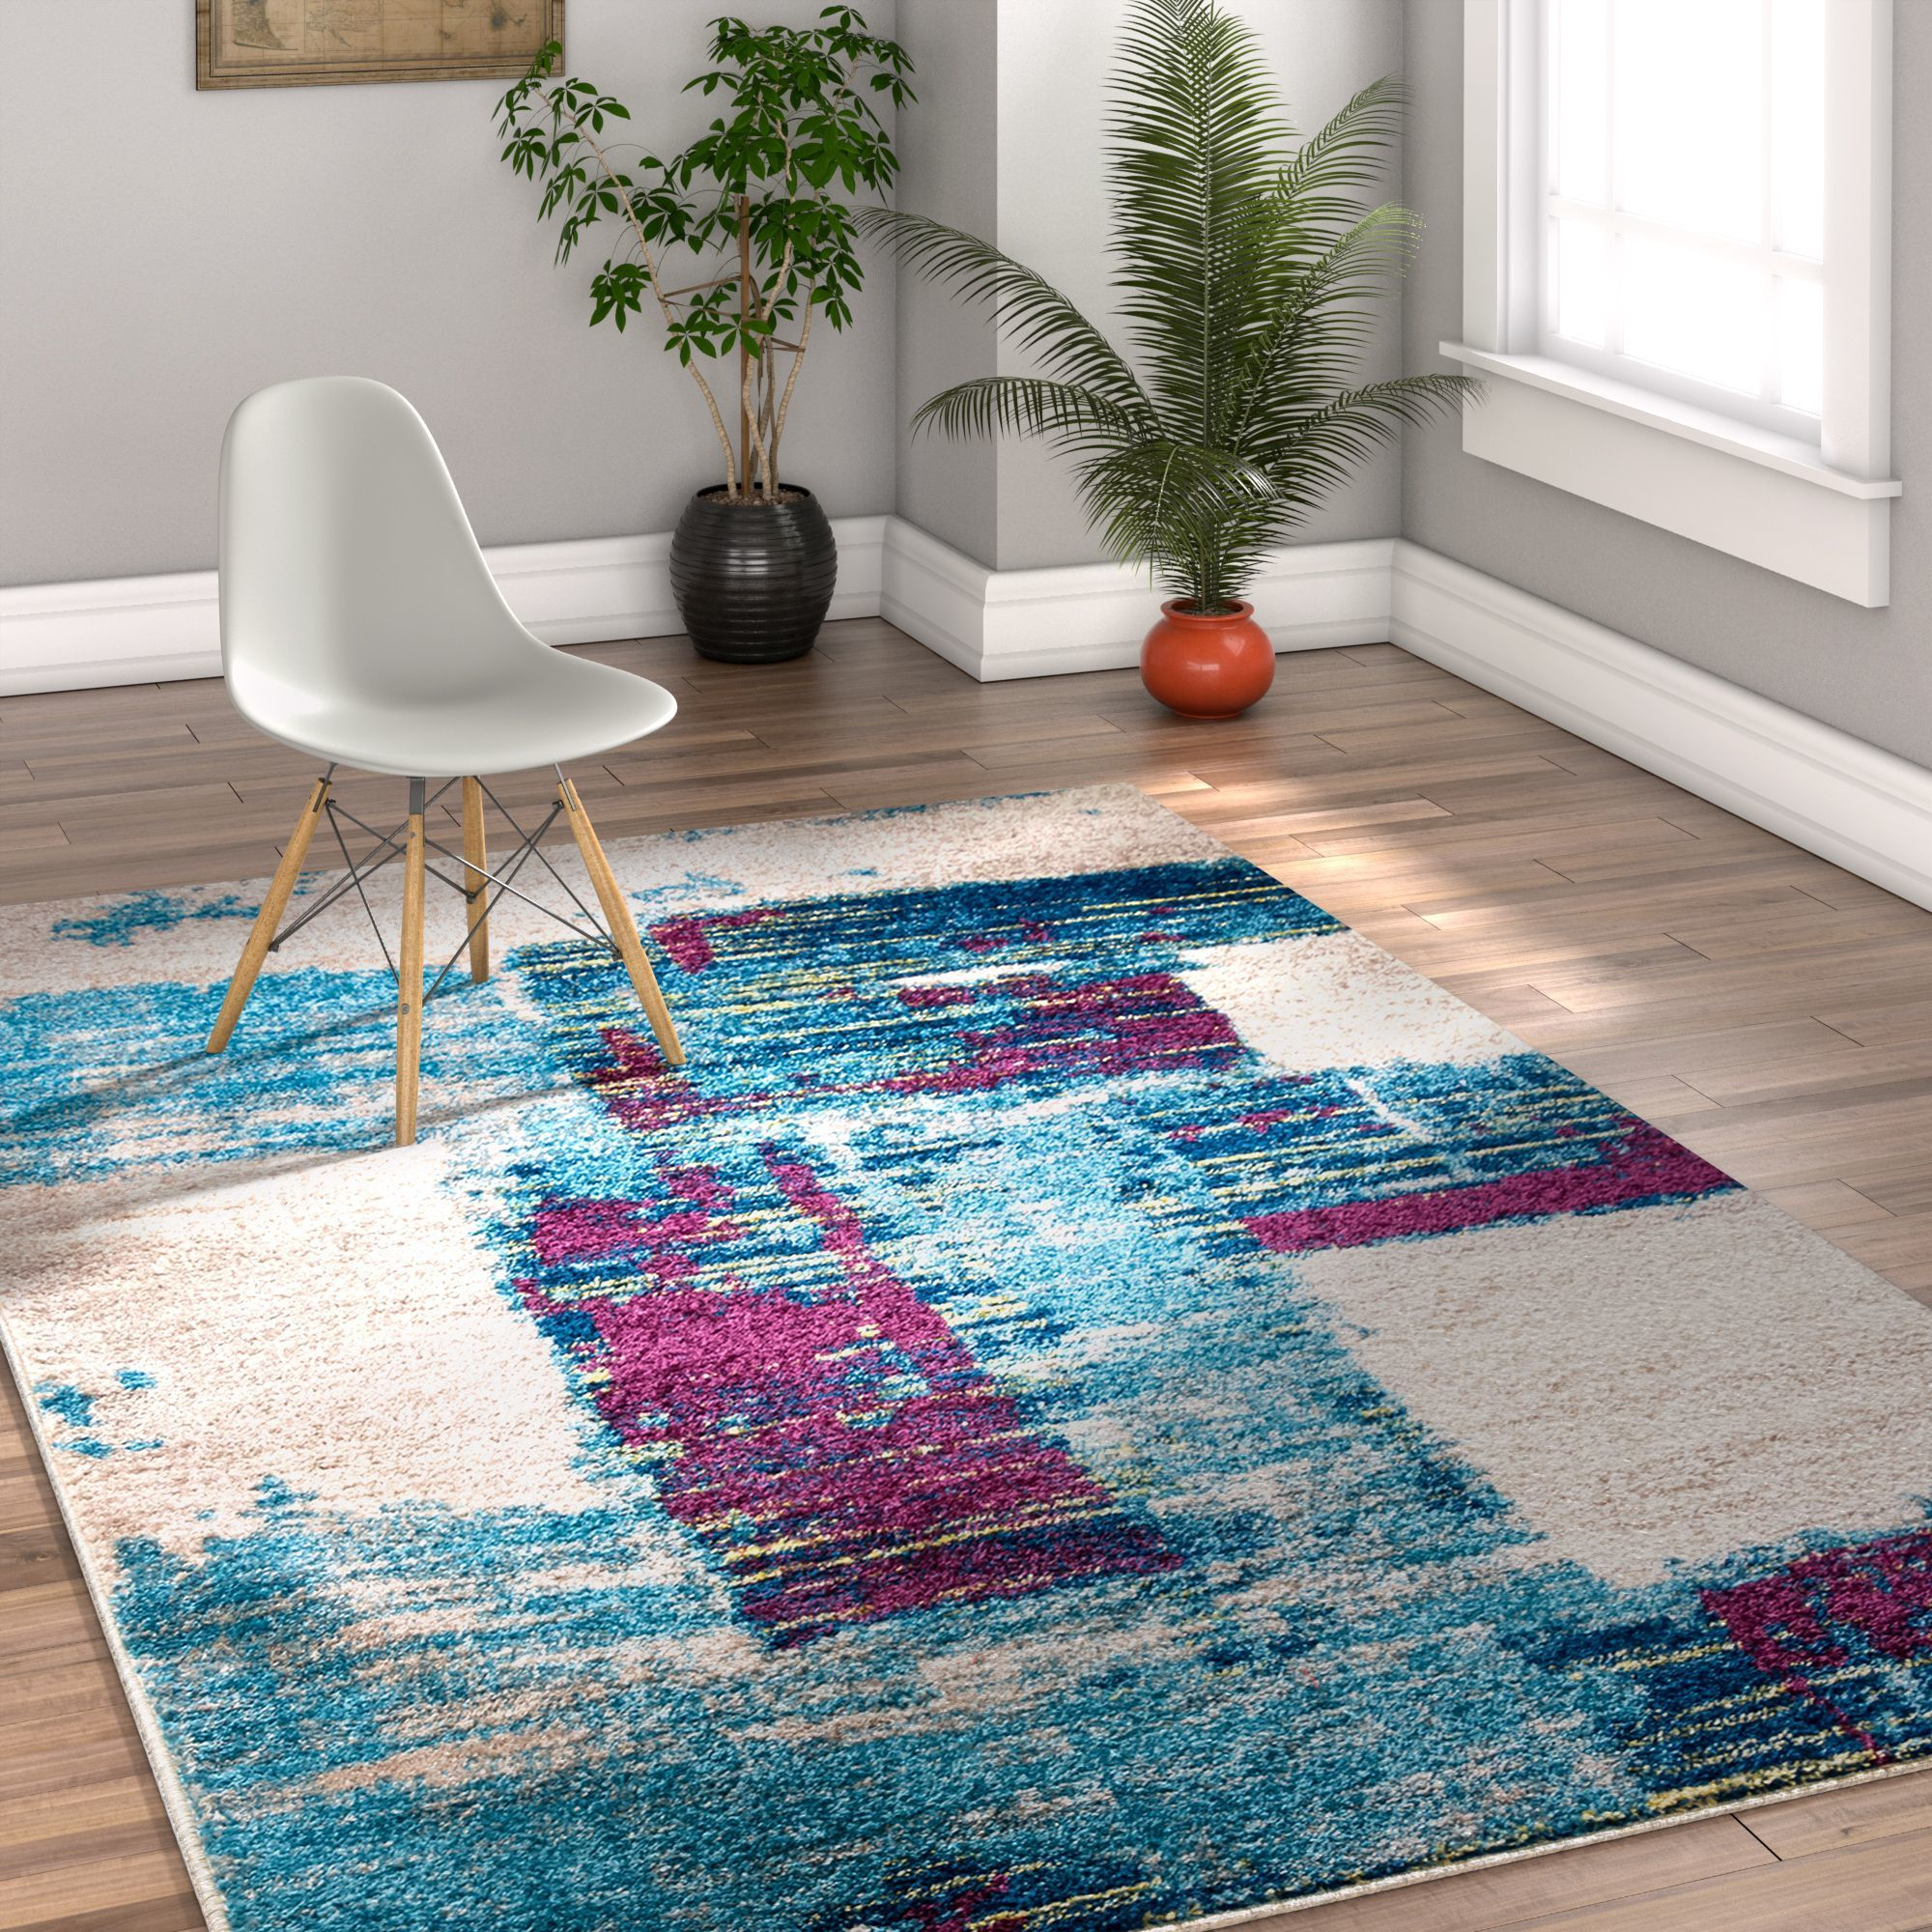 Well Woven Melbourne Modern Abstract Brush Strokes Multi Area Rug ...